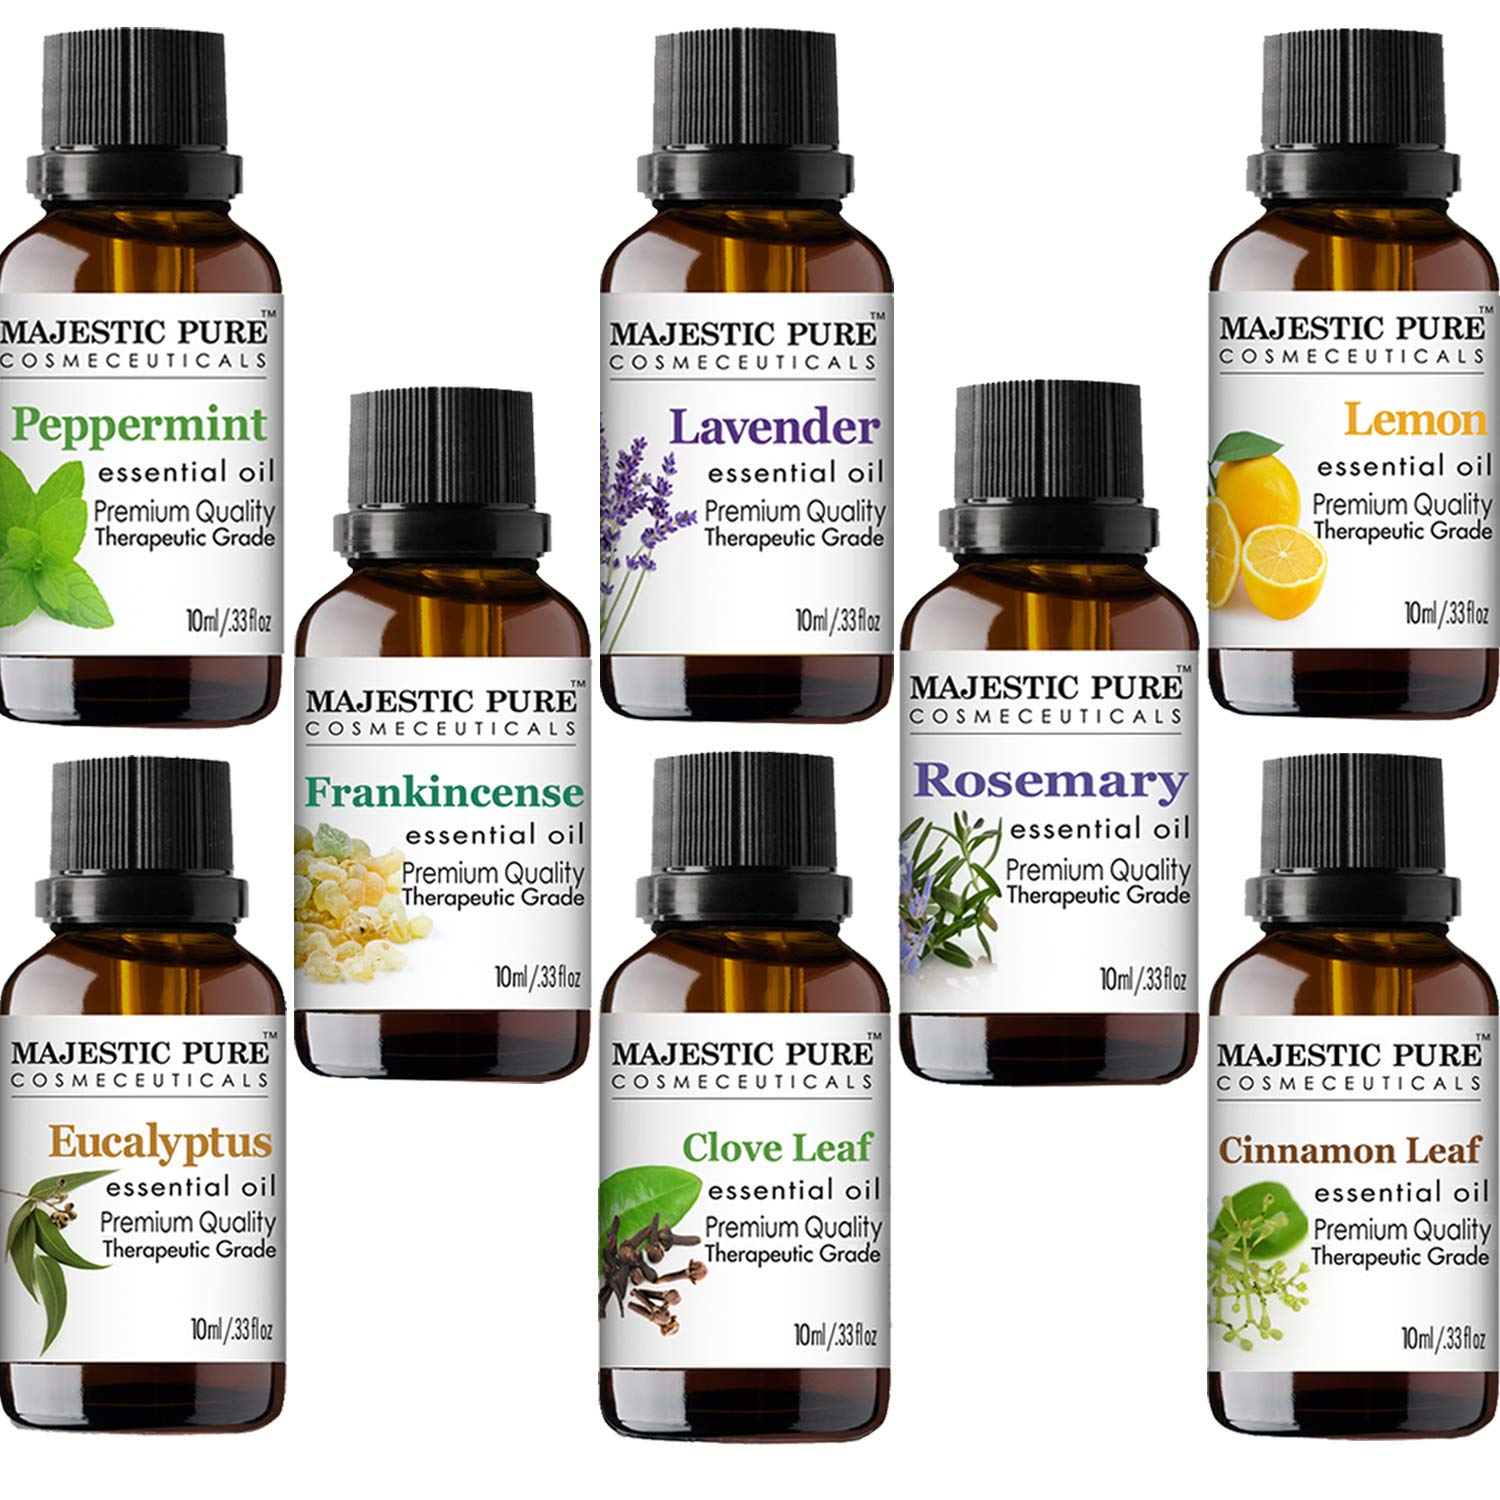 MAJESTIC PURE Essential Oils Set for Aromatherapy and Diffuser -Natural Therapeutic Grade Lavender, Eucalyptus, Peppermint, Lemon, Frankincense, Clove, Cinnamon and Rosemary Oils, Pack 8 x 10ml by Majestic Pure